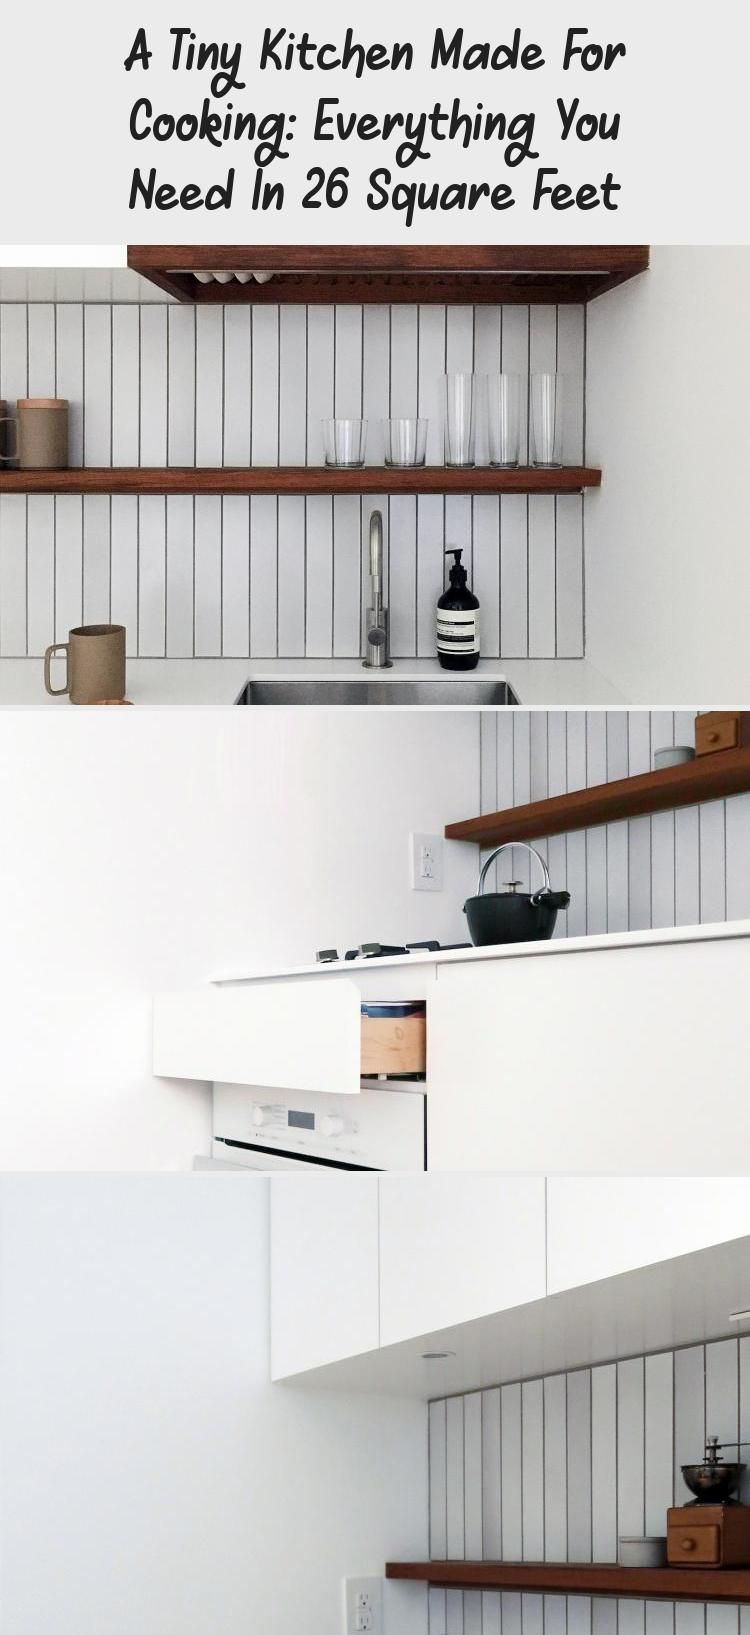 A Tiny Kitchen Made For Cooking